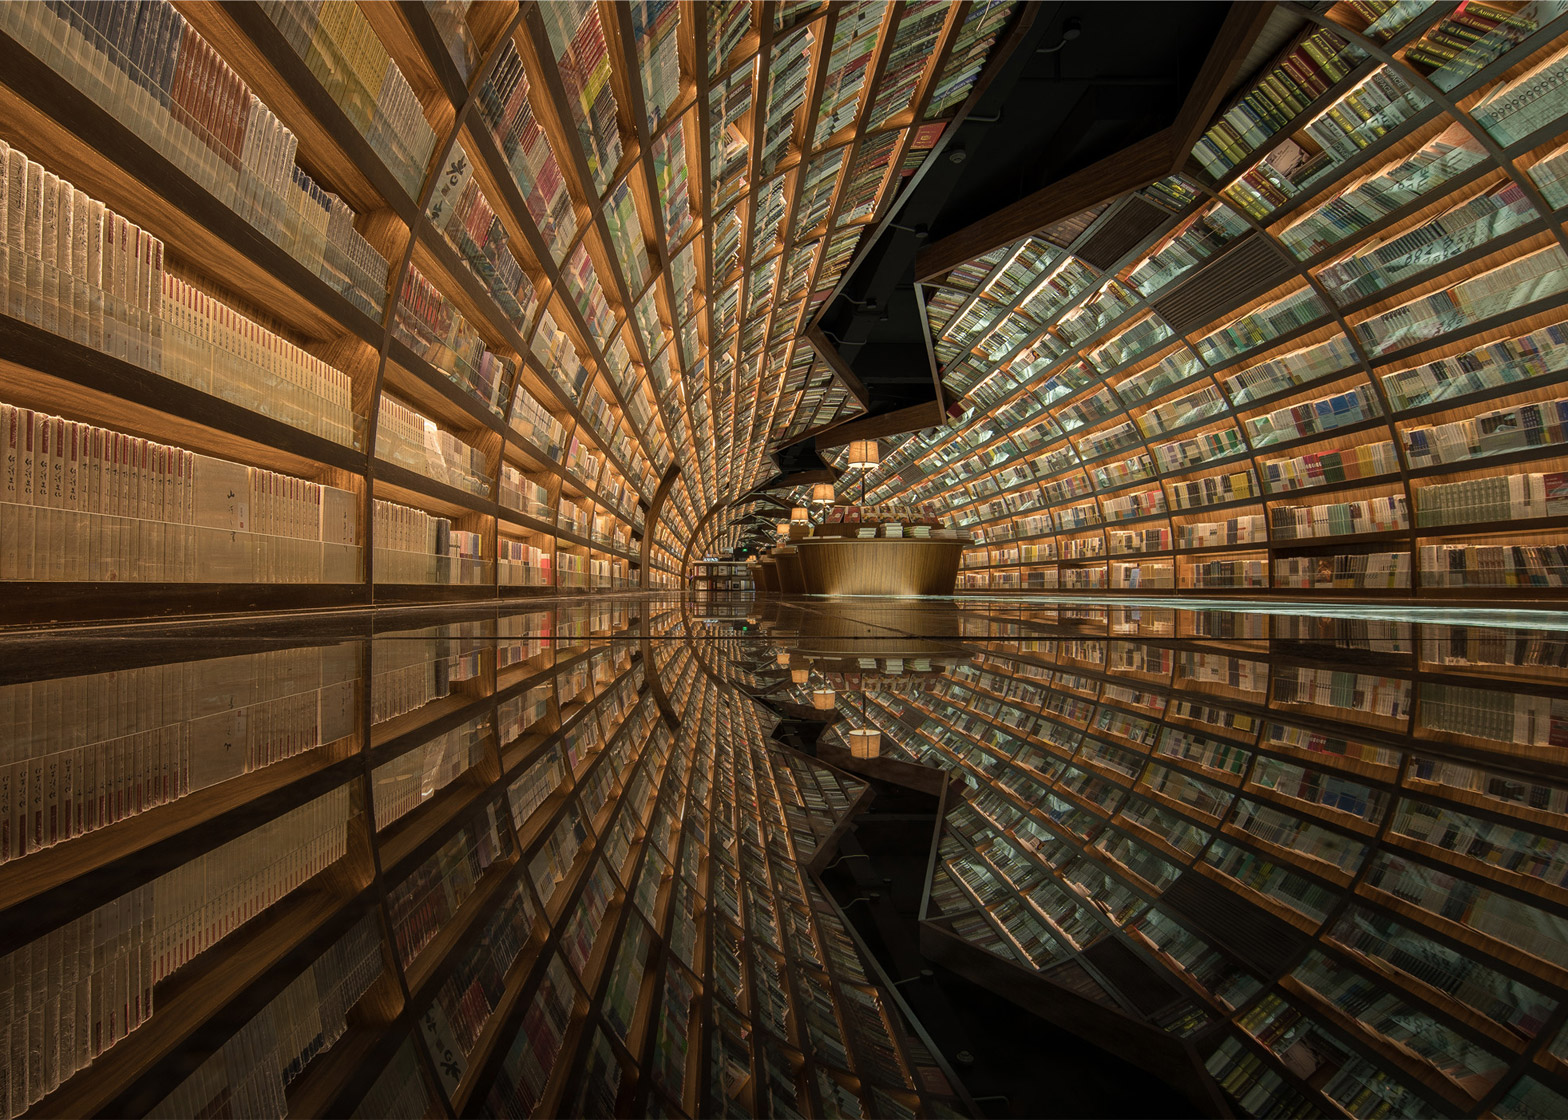 Tunnel of books shelves wrap curved bookstore walls for Interior design and decoration textbook